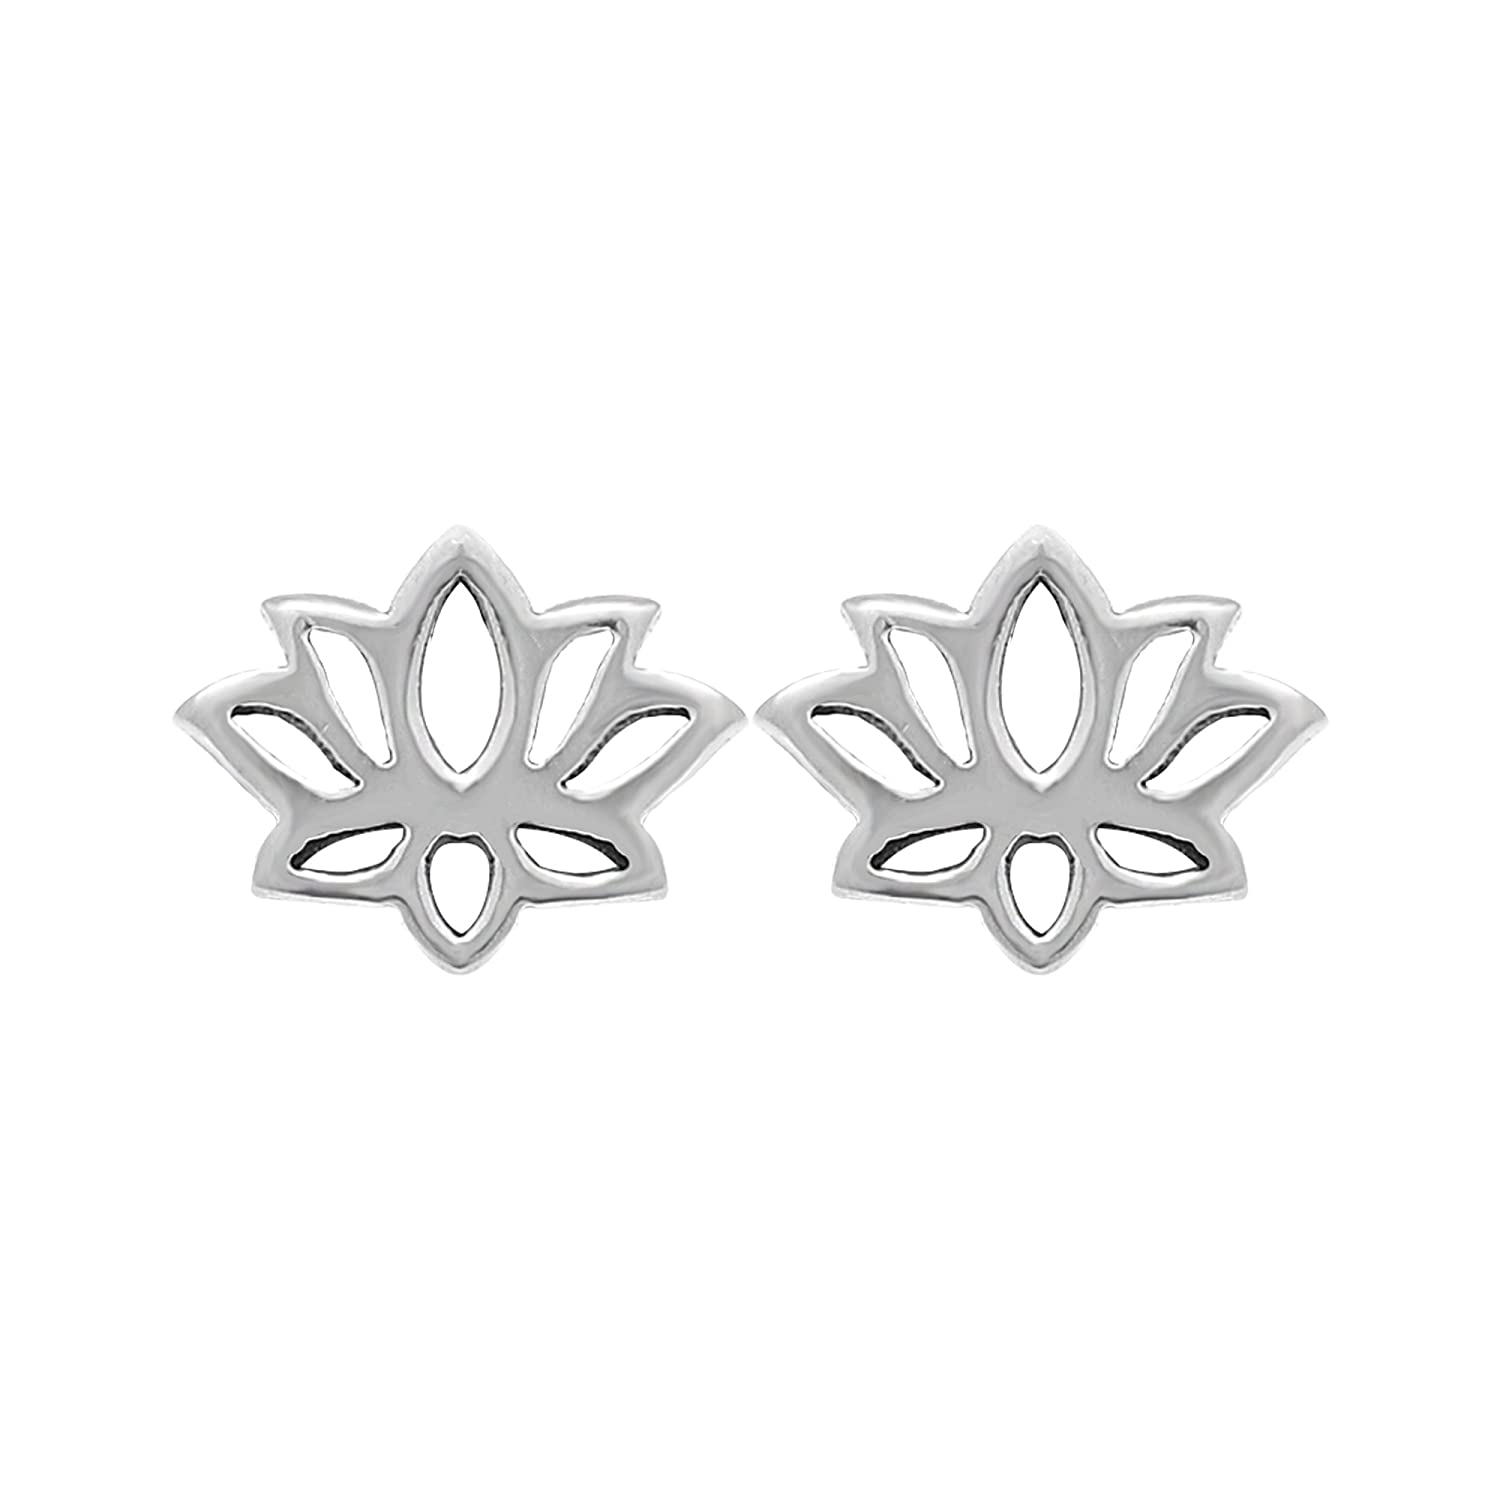 0d6509abd PURE 925 STERLING SILVER - Crafted to stand the test of time. Sterling  Silver is a mix of 92.5% silver with alloys to add strength and durability